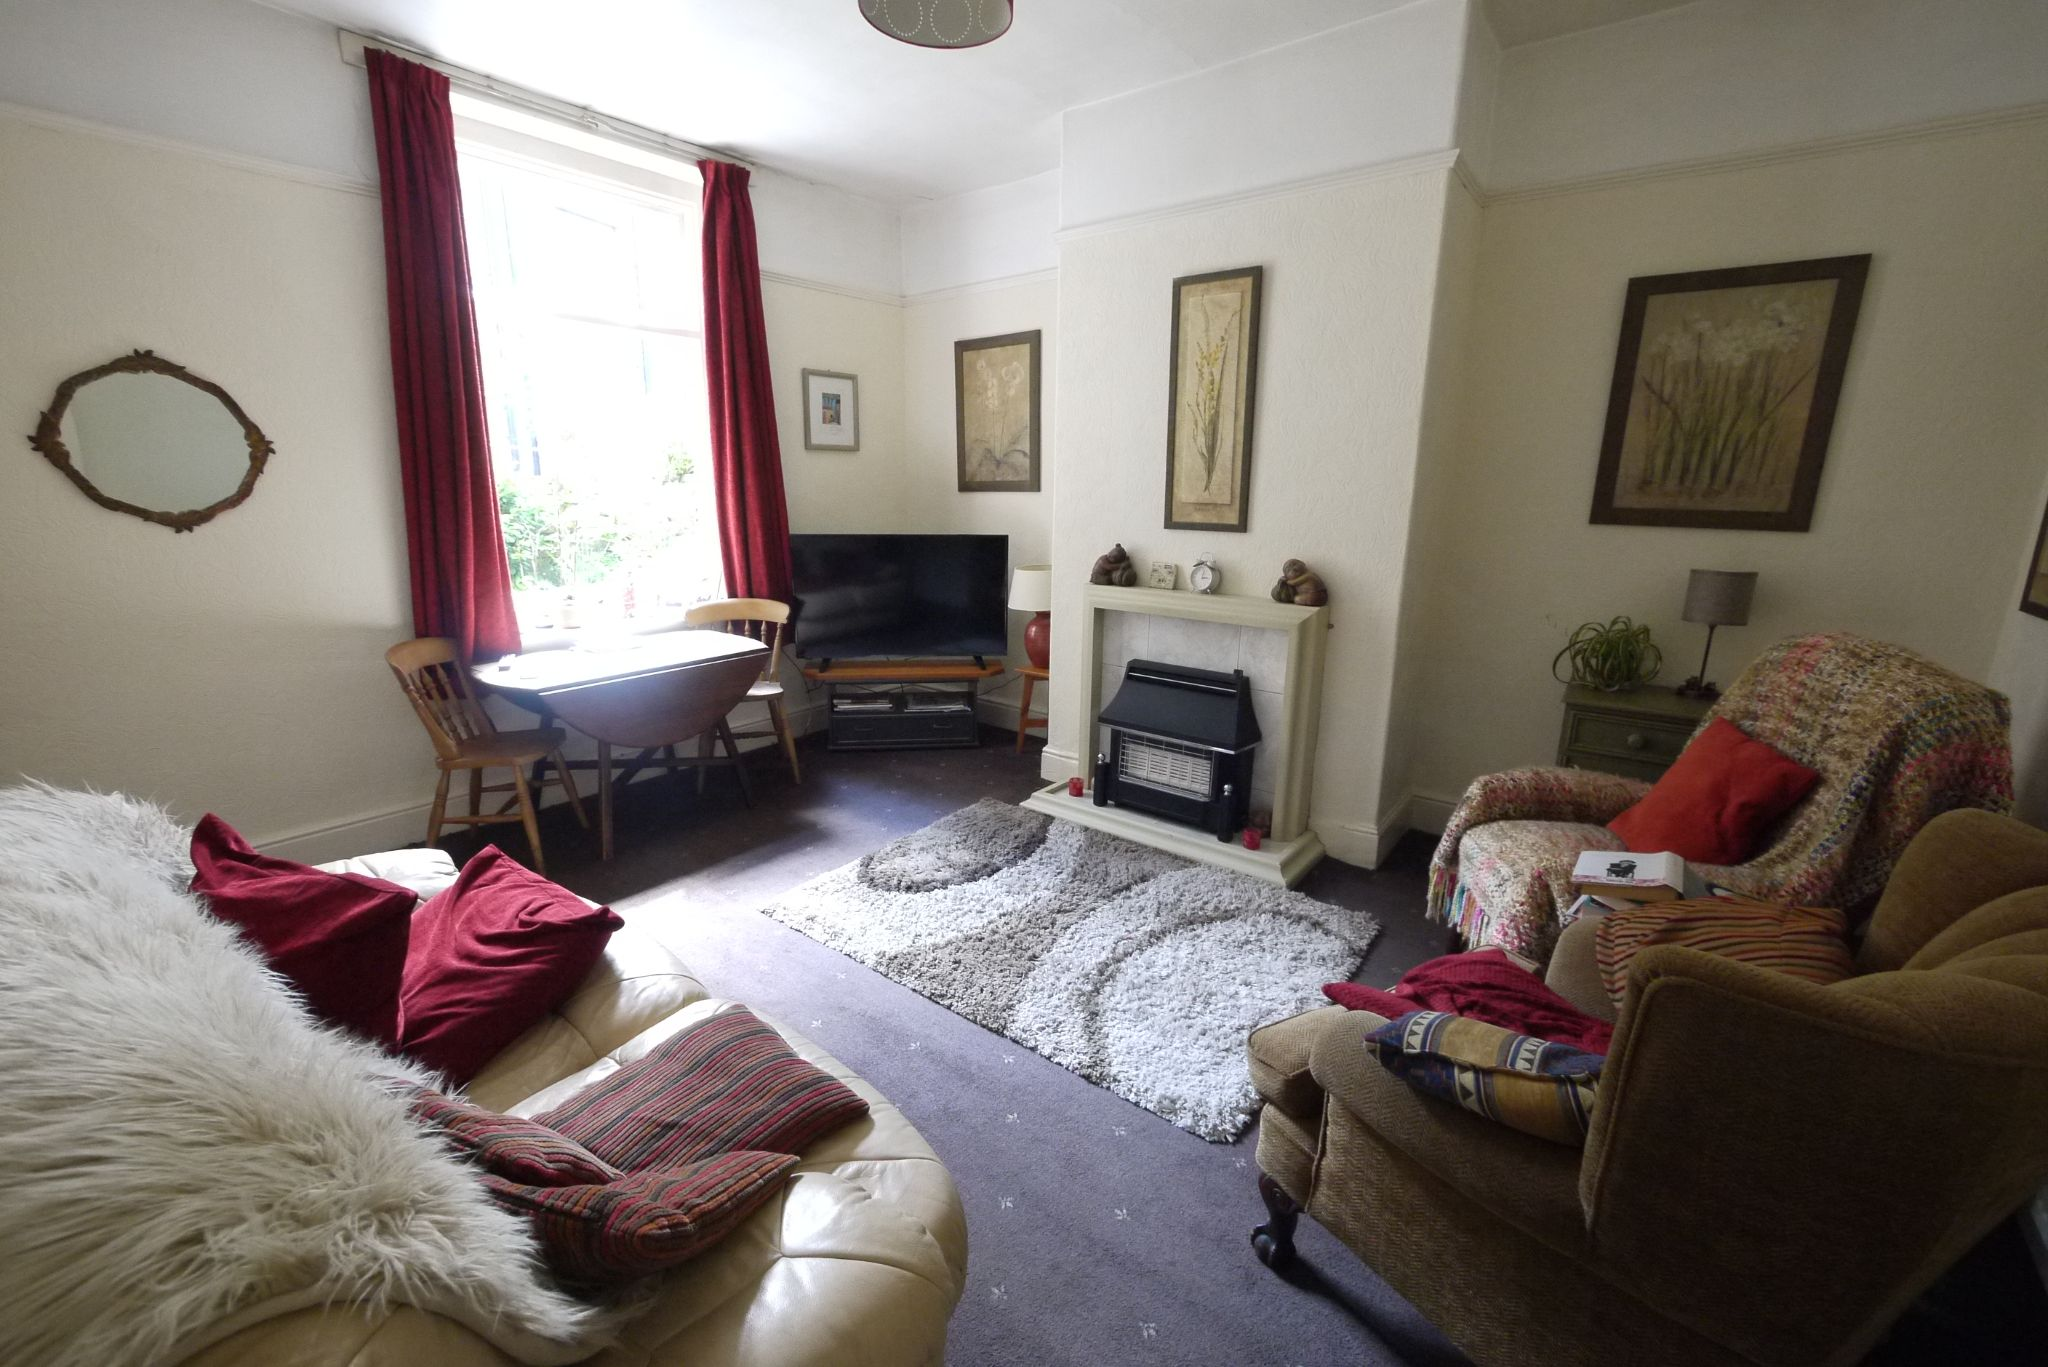 5 bedroom mid terraced house For Sale in Brighouse - Dining Room.